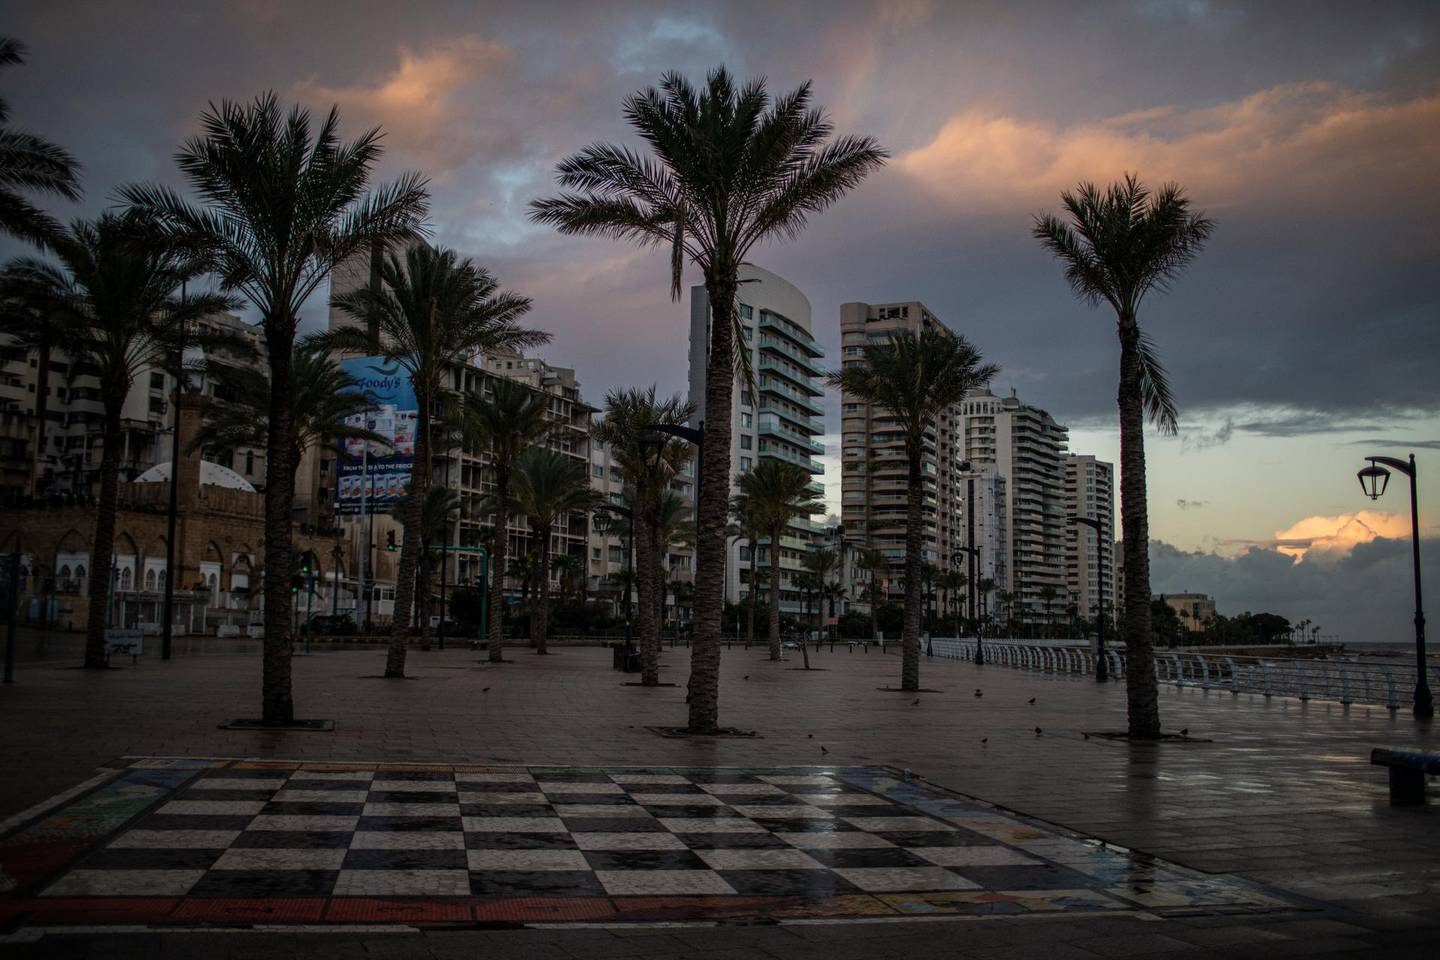 BEIRUT, LEBANON - JANUARY 14: A general view of an empty Corniche during the first day of the 24 hours lockdown on January 14, 2021, in Beirut, Lebanon. The country is introducing an 11-day, 24-hour curfew that confines people to their homes with limited exceptions. Residents will even be banned from going to the grocery store. (Photo by Diego Ibarra Sanchez/Getty Images)